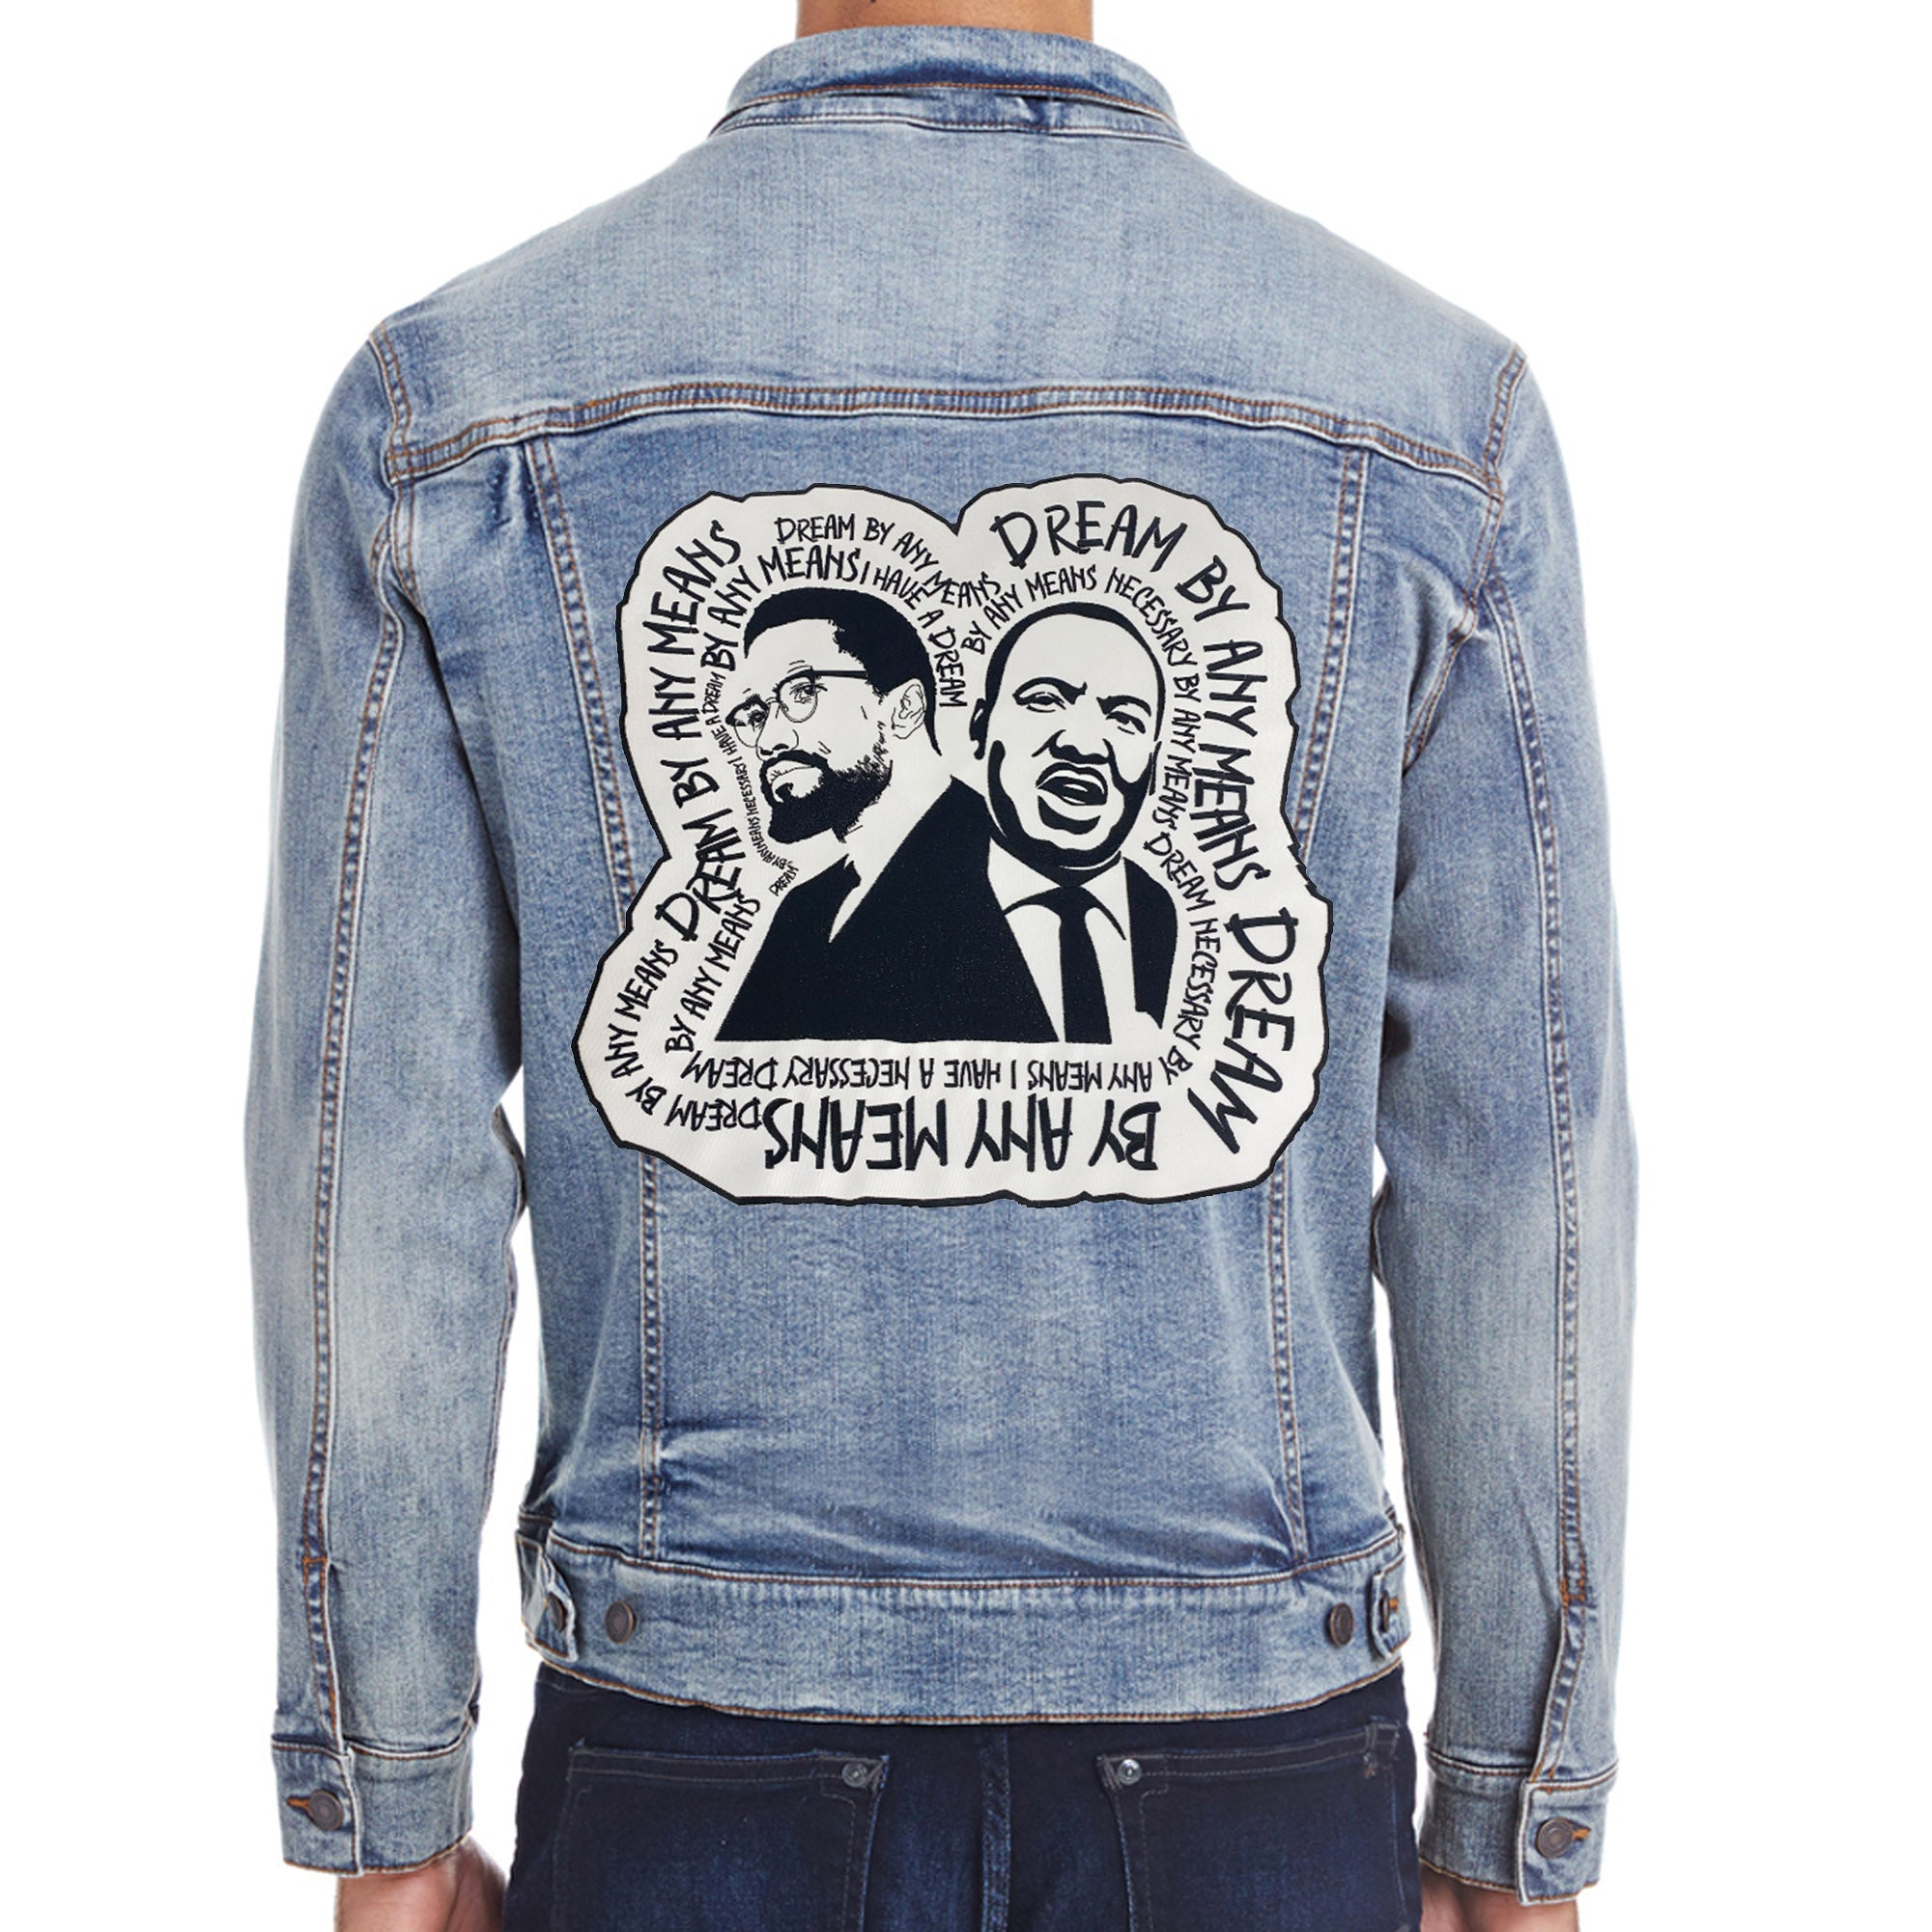 Dream By Any Means Denim Jacket